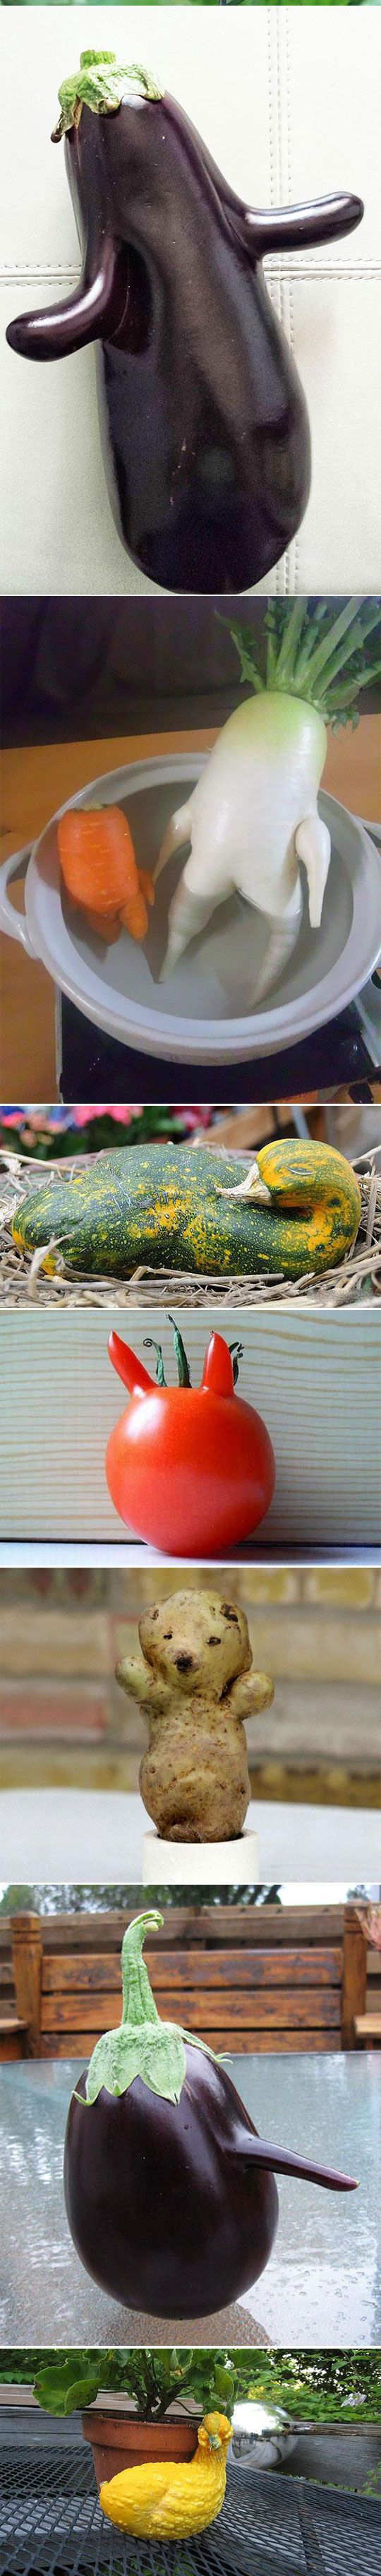 funny-shaped-vegetables-fruits-animals-eggplant